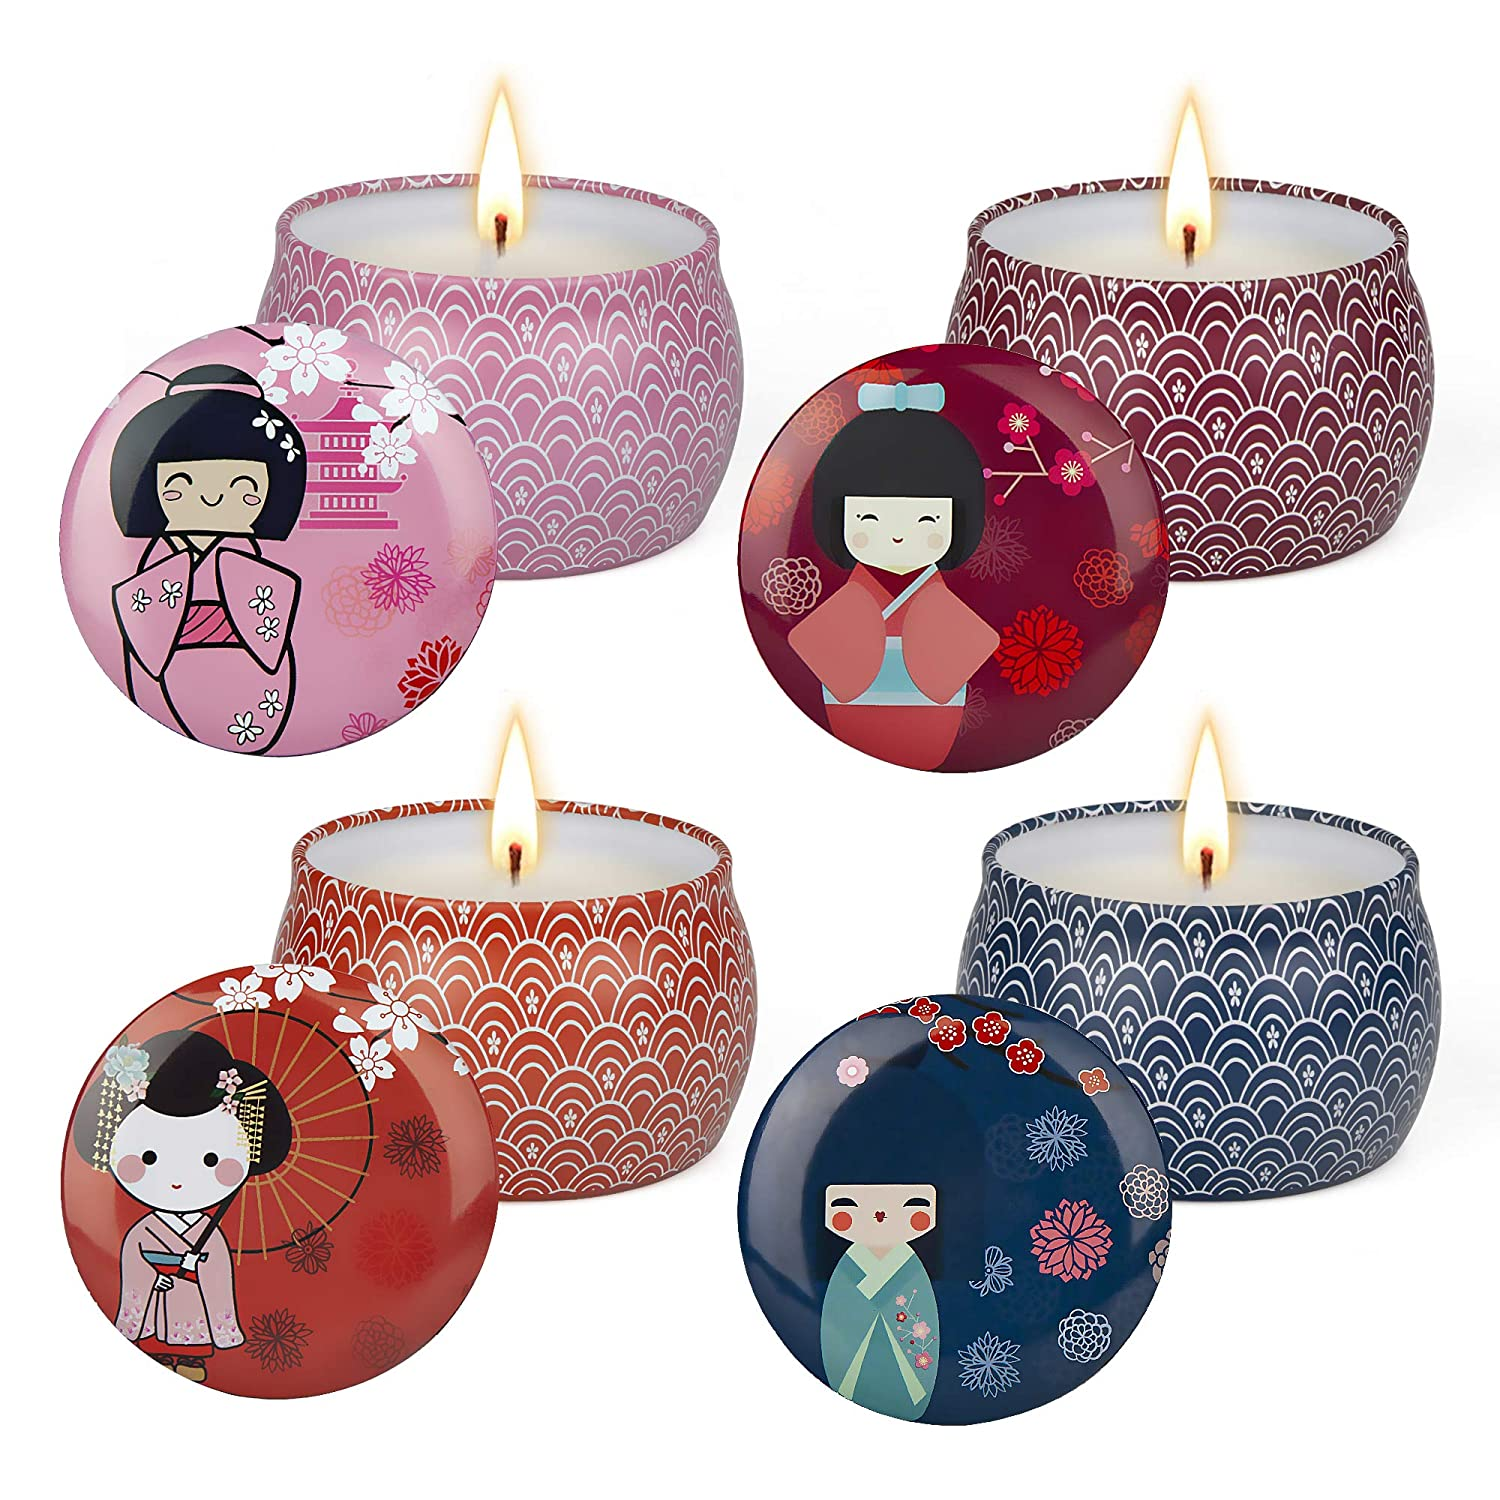 CREASHINE Scented Candles Gifts Set for Women, 4.4Oz Natural Soy Wax Travel Tin Candle Home Decor Women Gift with Strongly Fragrance Essential Oil for Stress Relief and Aromatherapy - 4 Pack